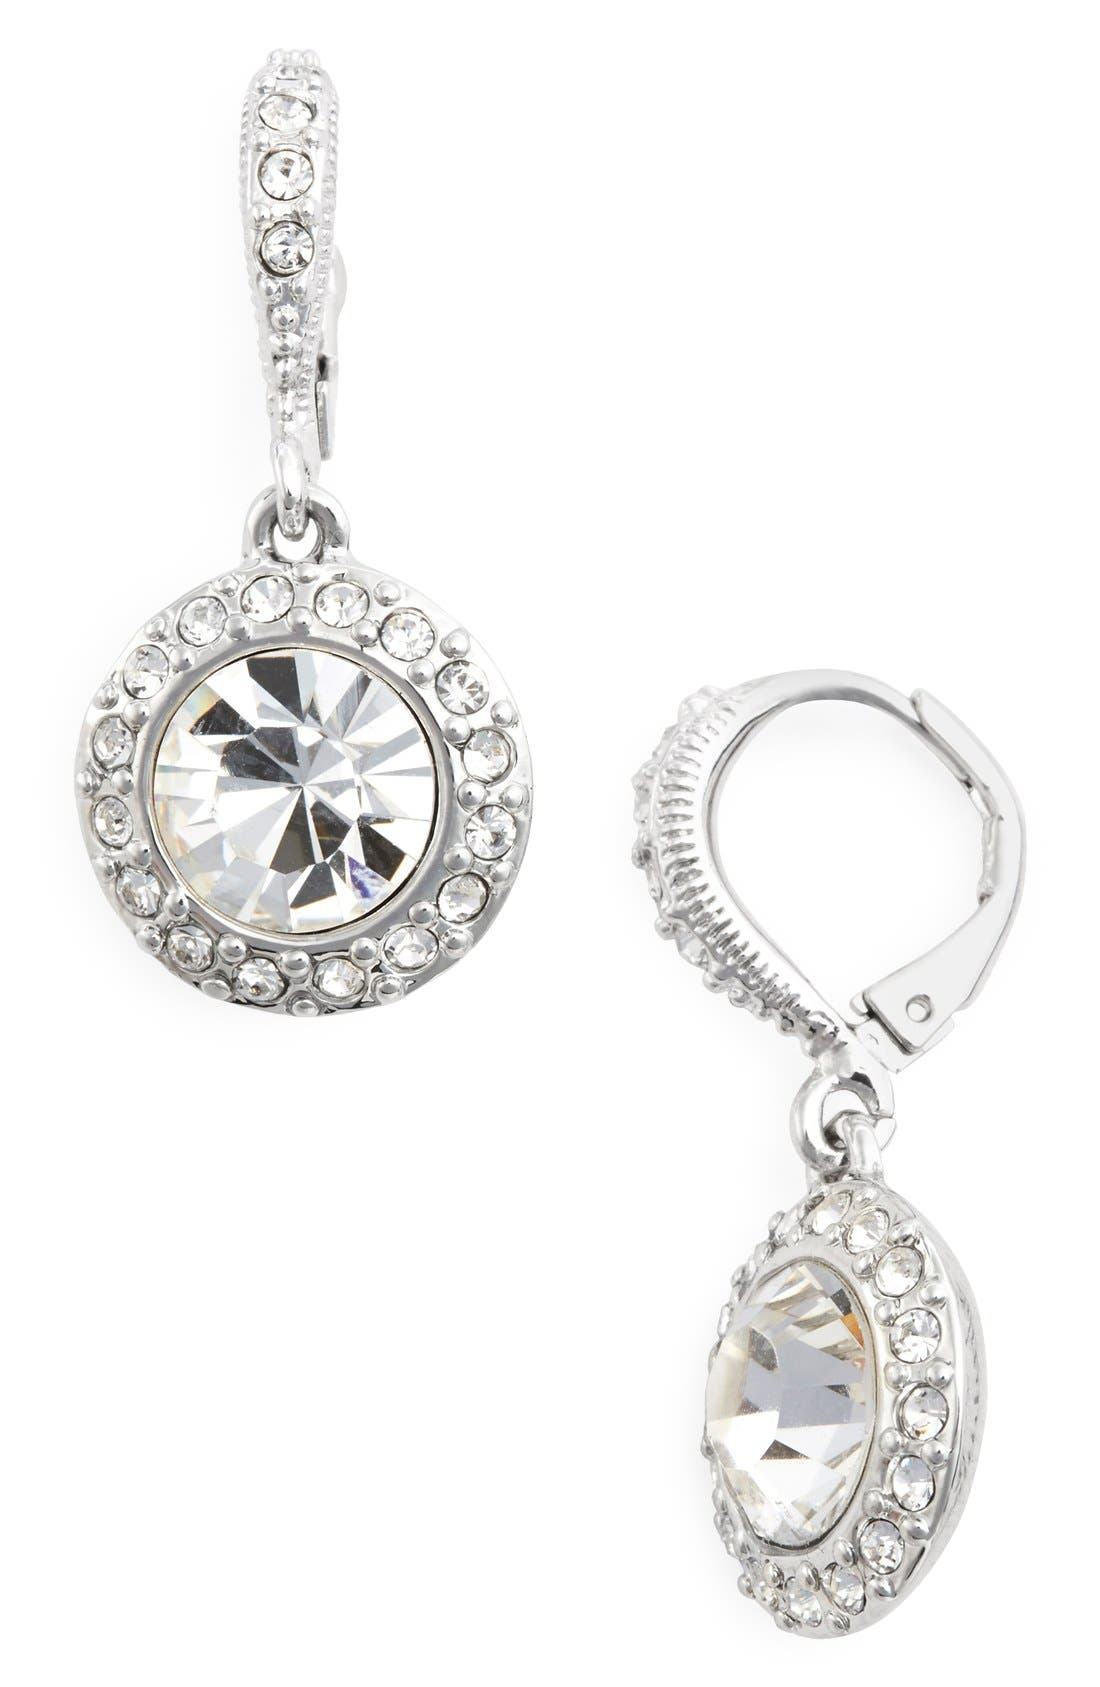 Crystal Drop Earrings,                             Main thumbnail 1, color,                             Silver/ Crystal